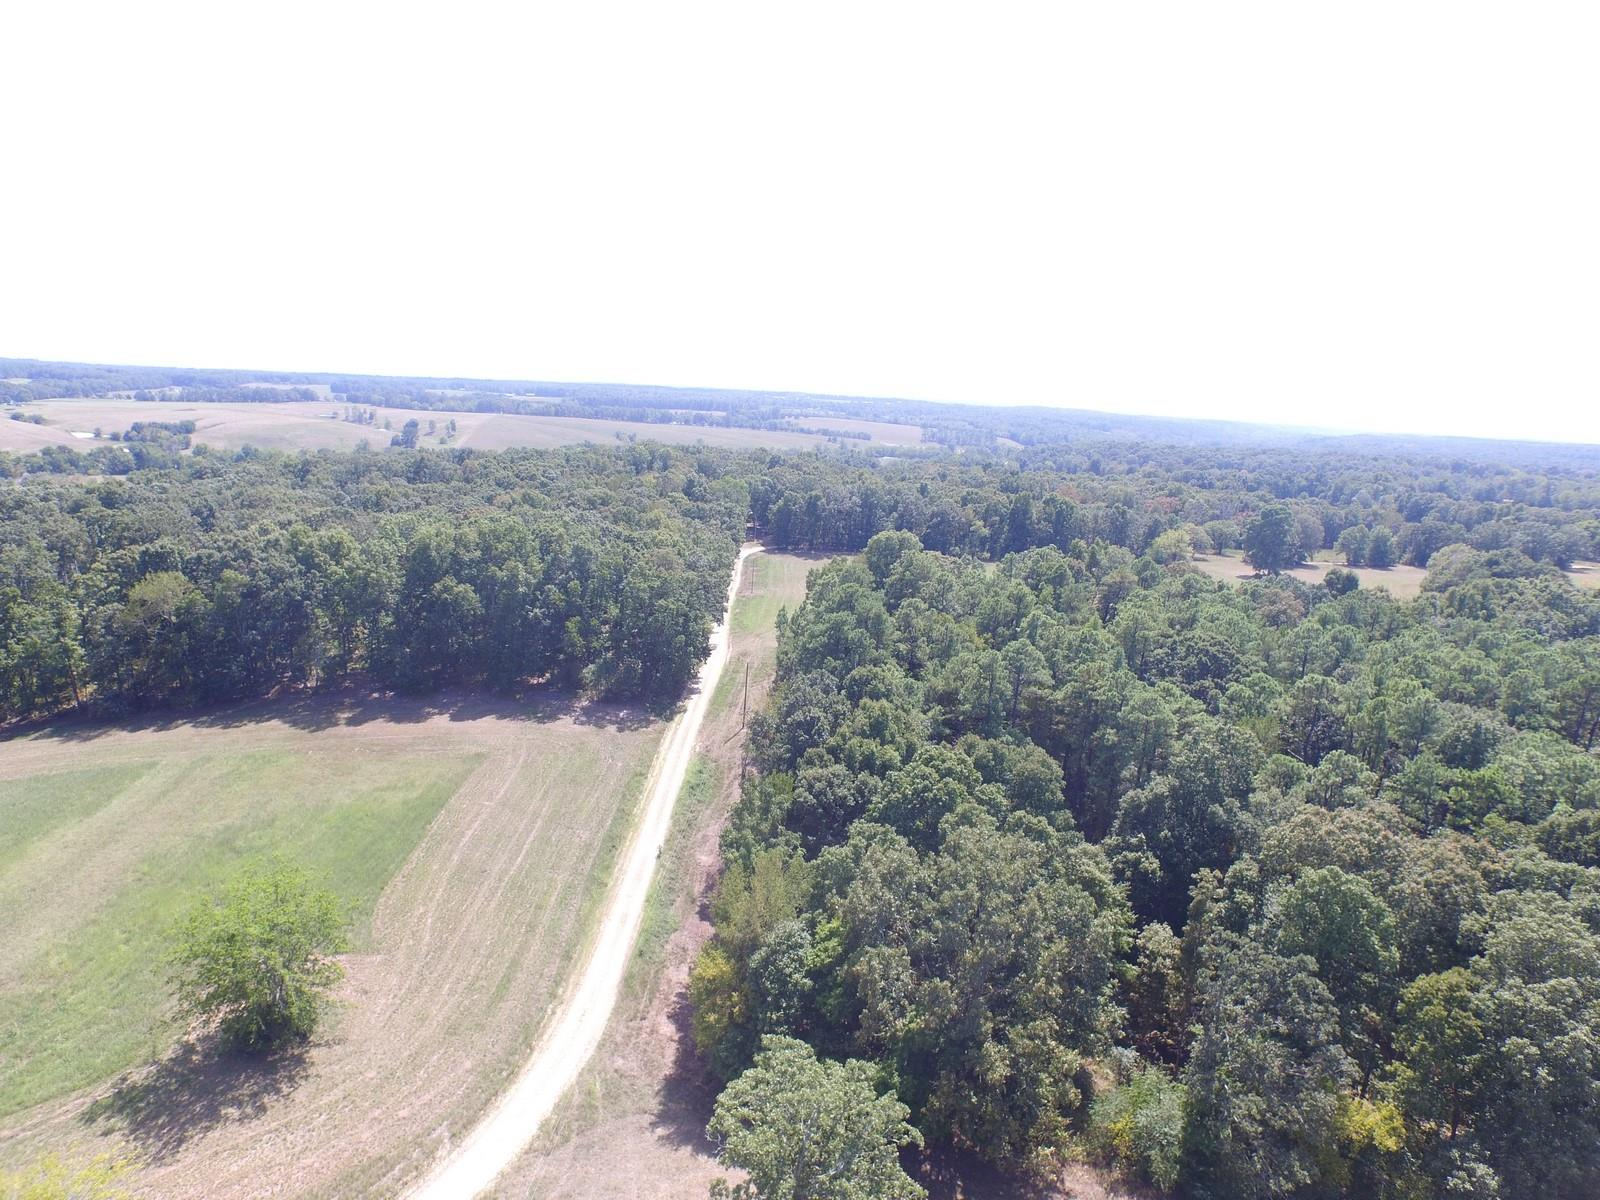 971 Robertson Rd, MC EWEN, TN 37101 - MC EWEN, TN real estate listing